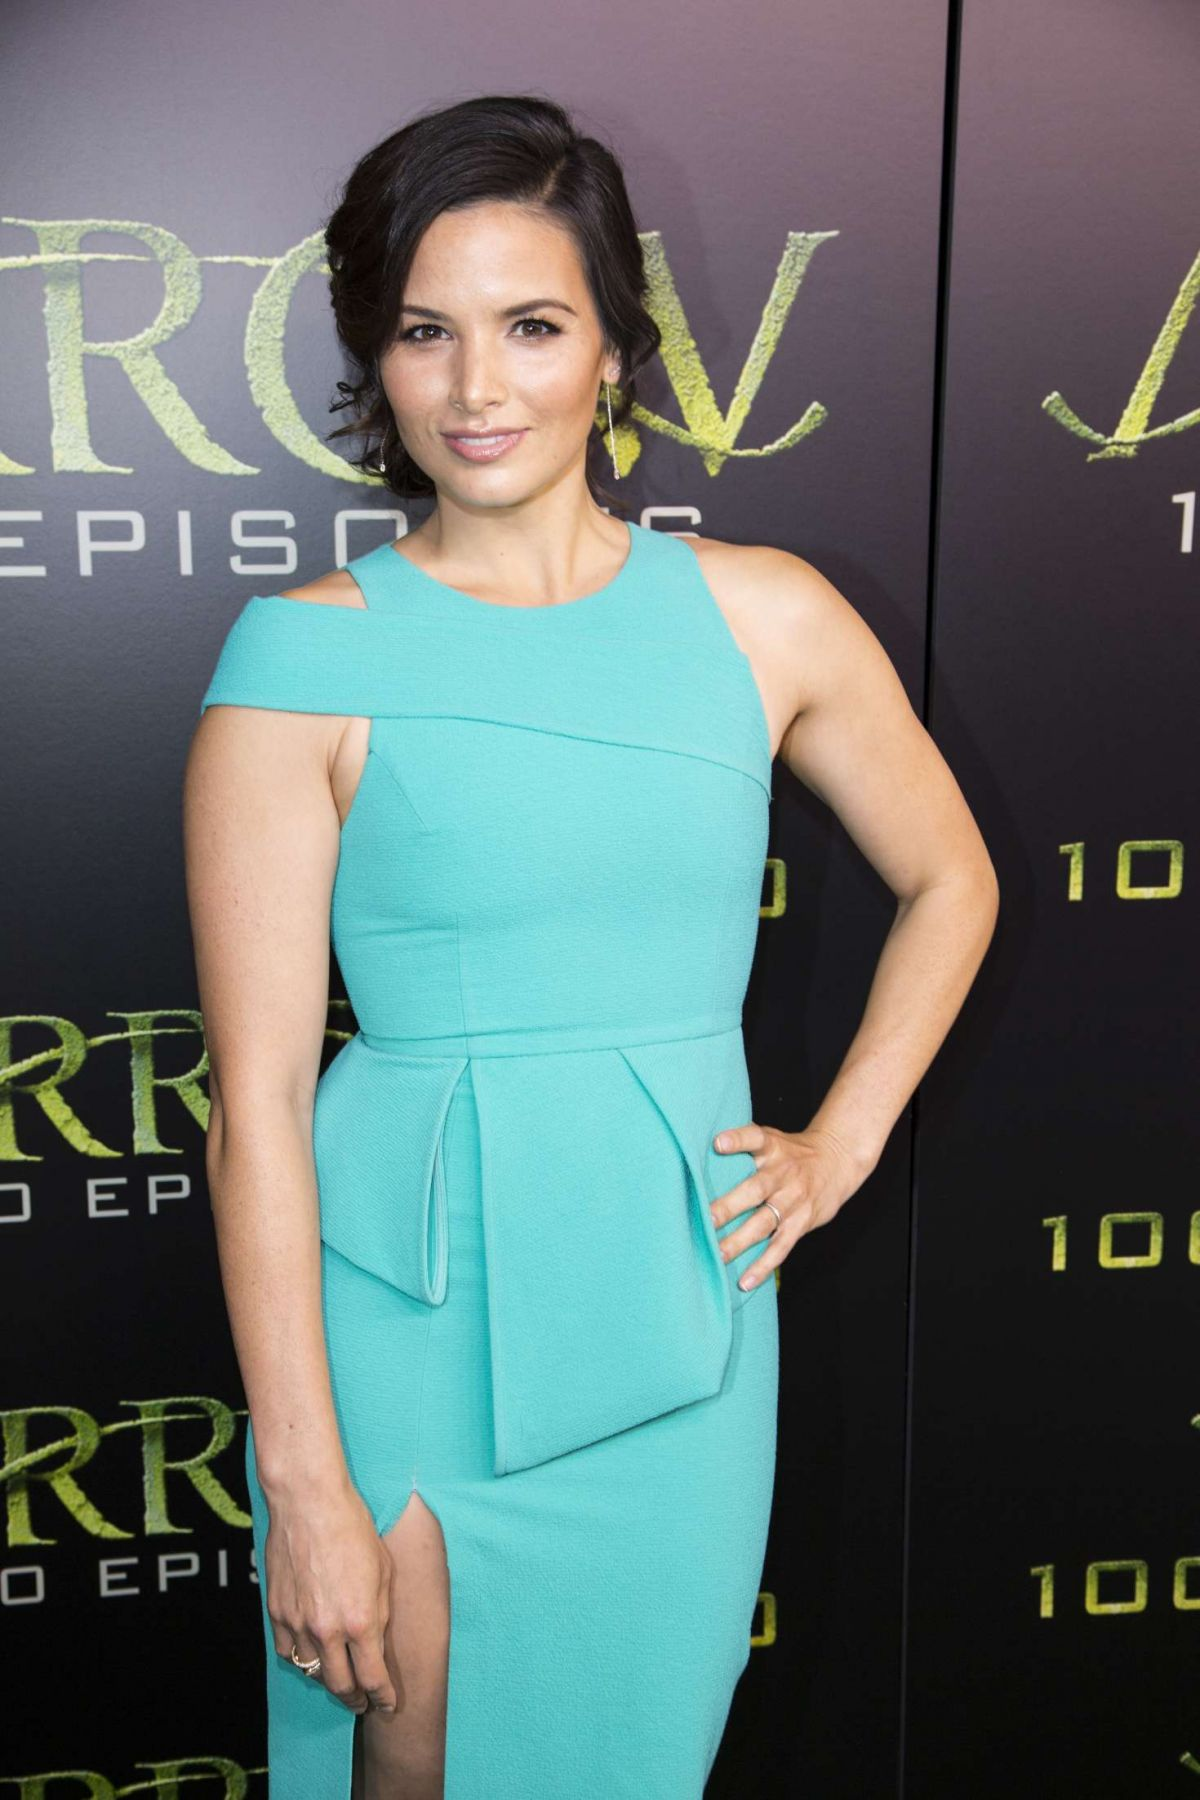 katrina-law-at-arrow-100th-episode-celebration-in-vancouver-10-22-2016_1-1.jpg